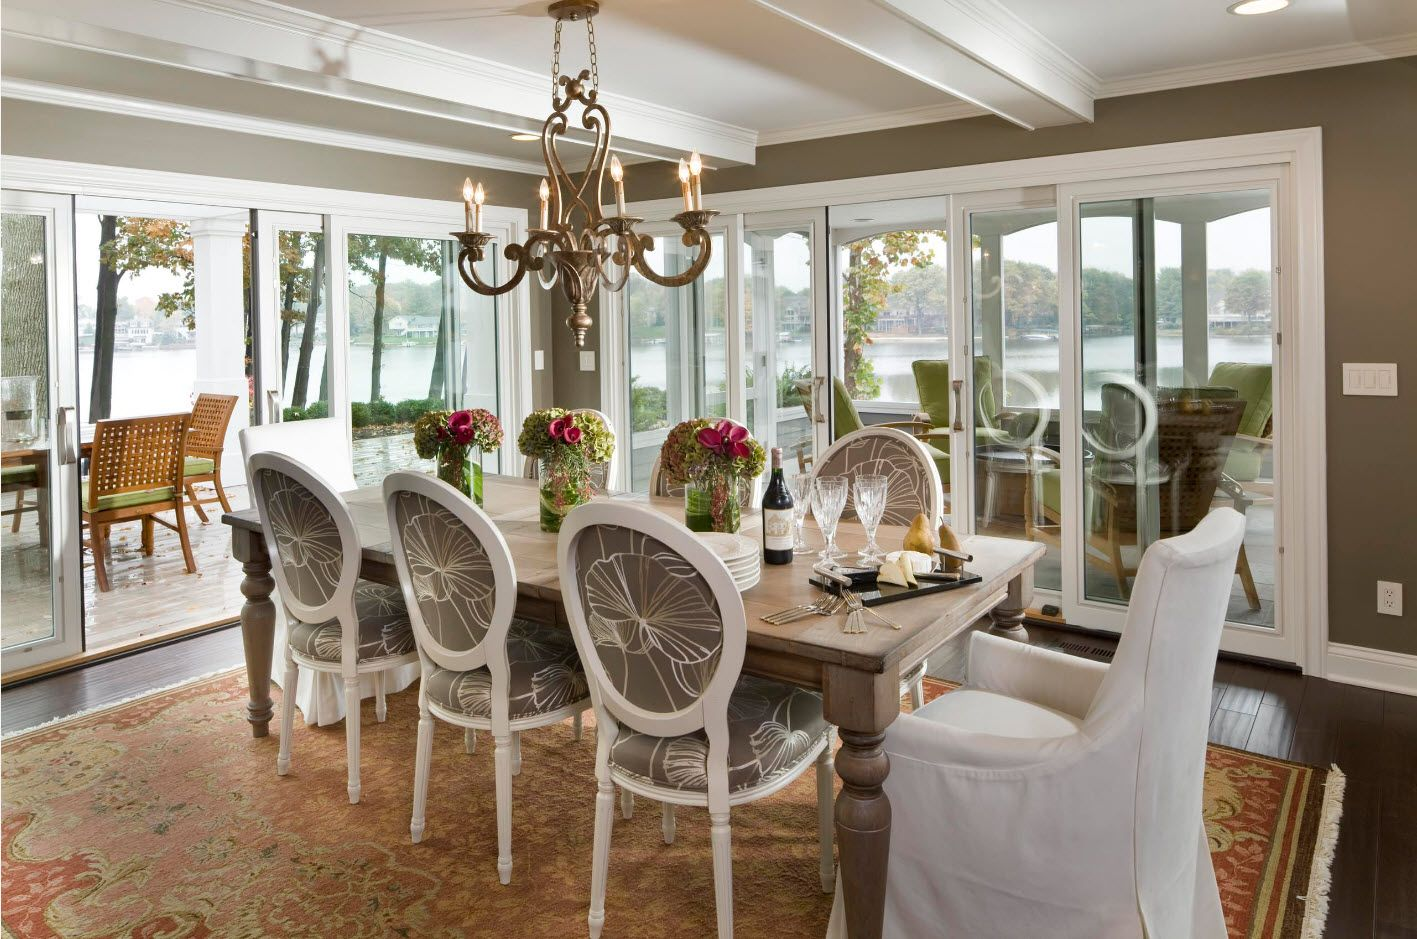 Panoramic windows in the classic styled dining with royal upholstered chairs